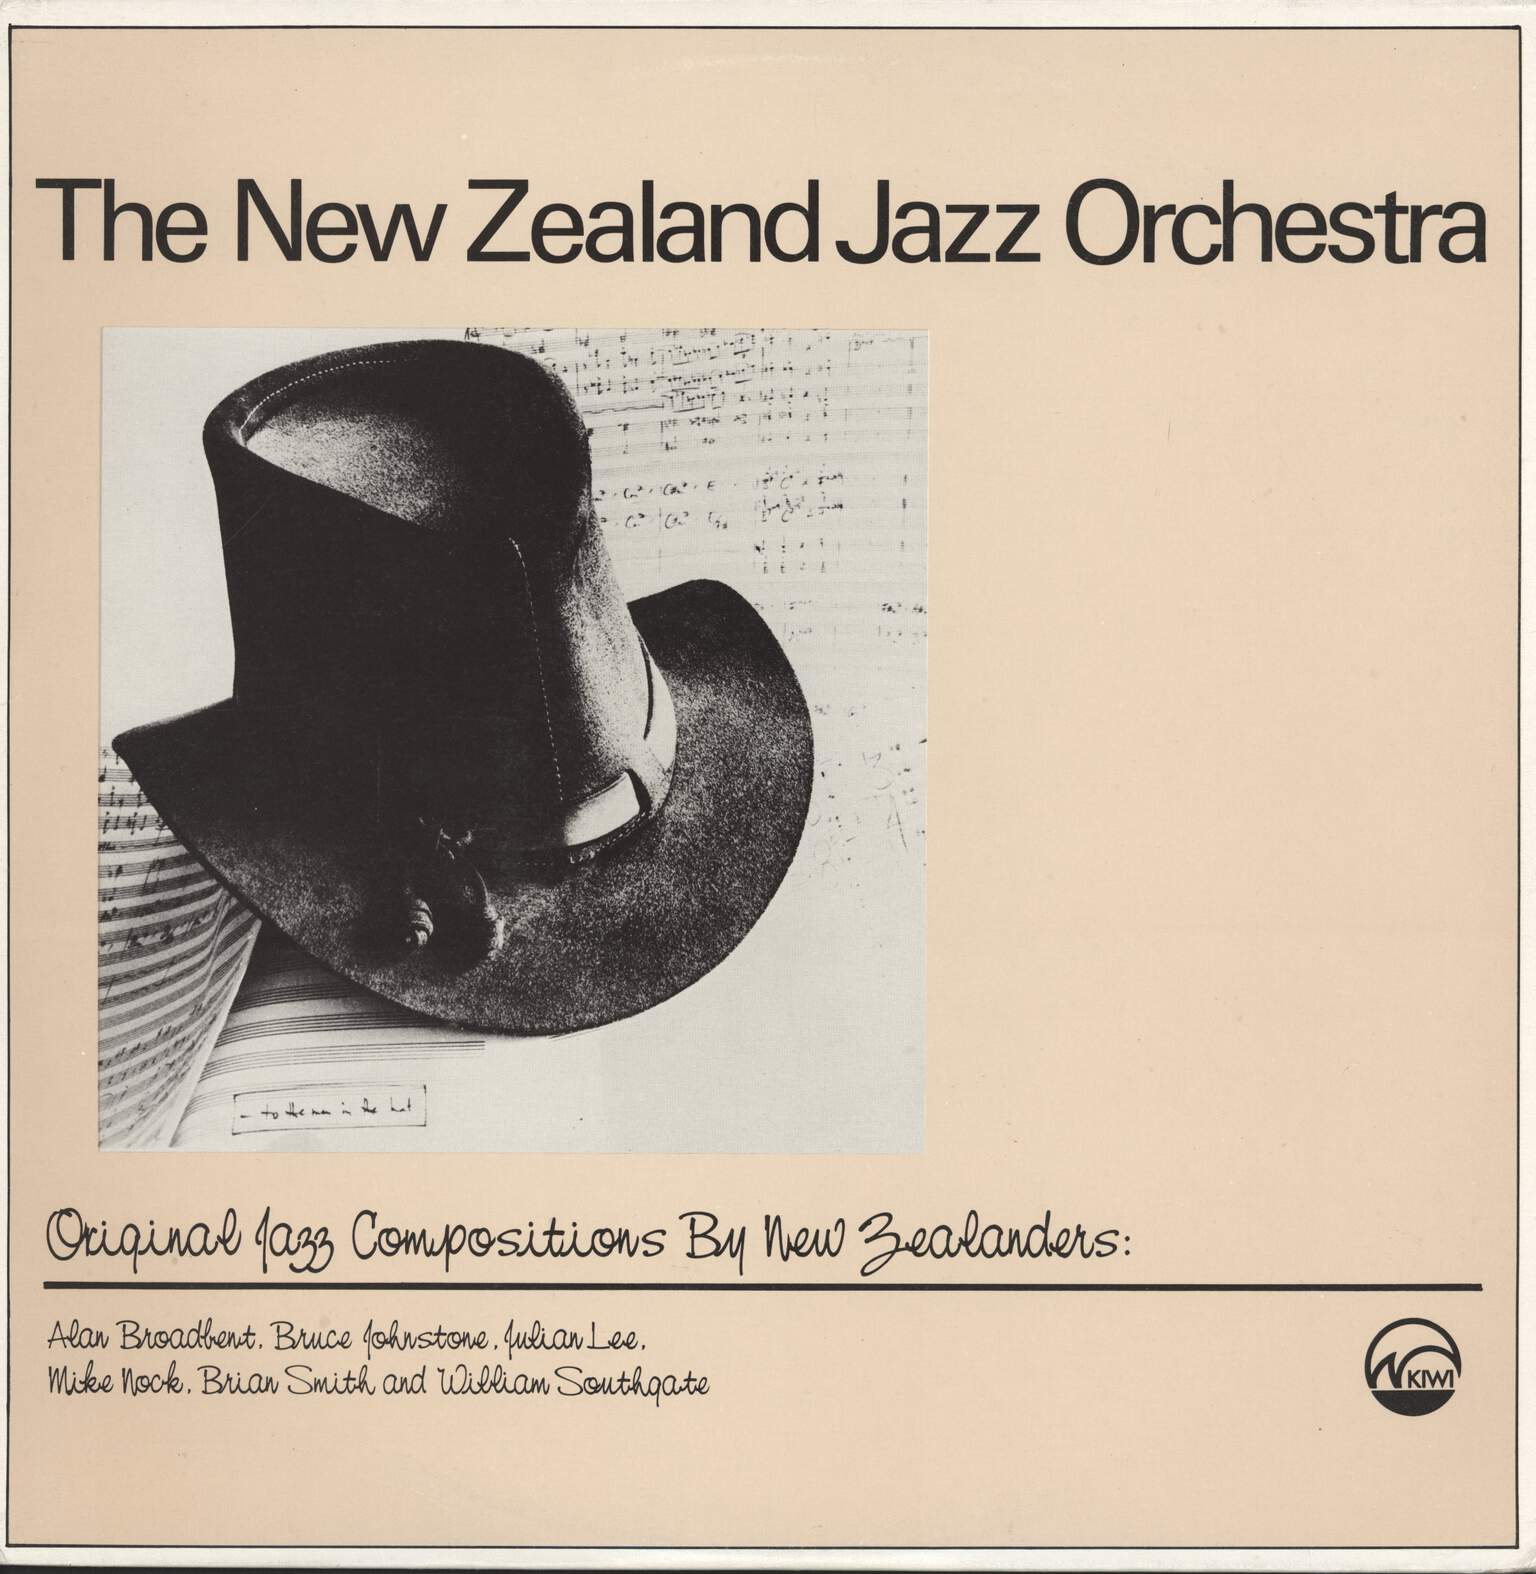 New Zealand Jazz Orchestra: Original Jazz Compositions By New Zealanders, LP (Vinyl)